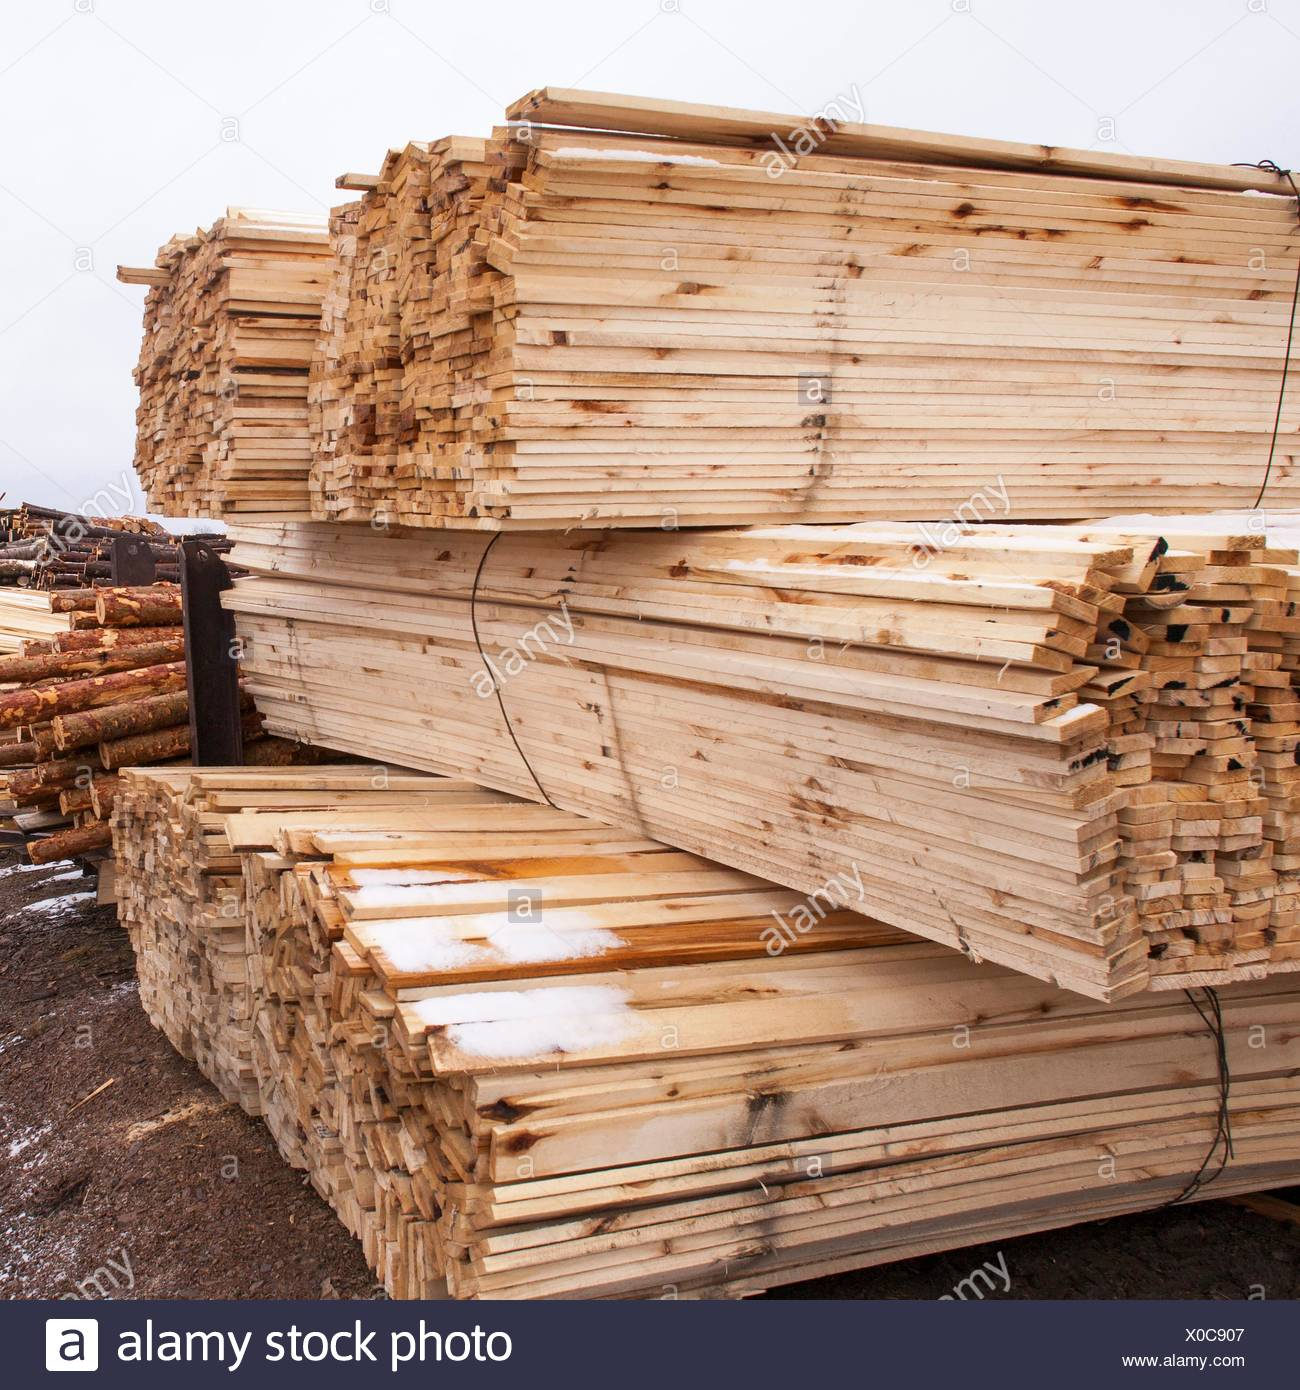 Stacks of timber and tree trunks in timber yard - Stock Image